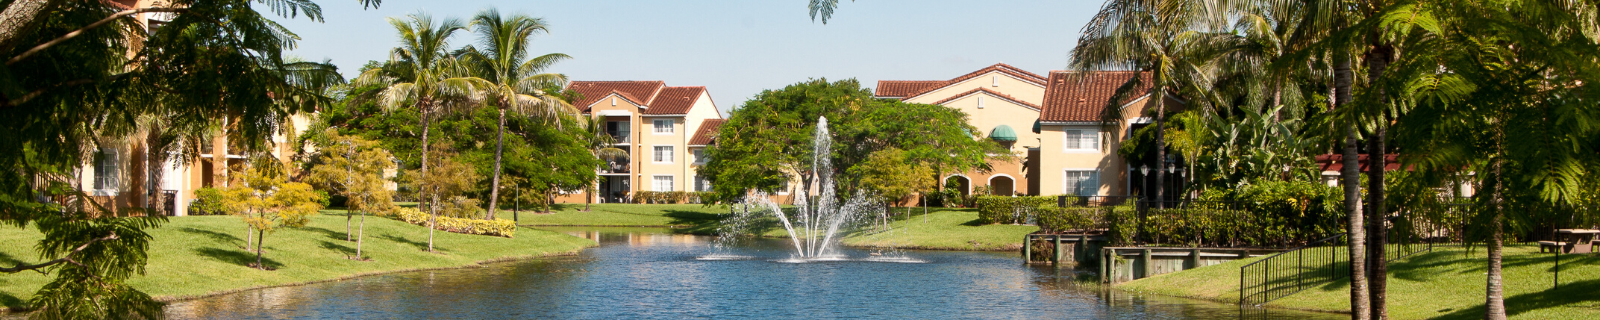 Lake View with Water Fountain Feature